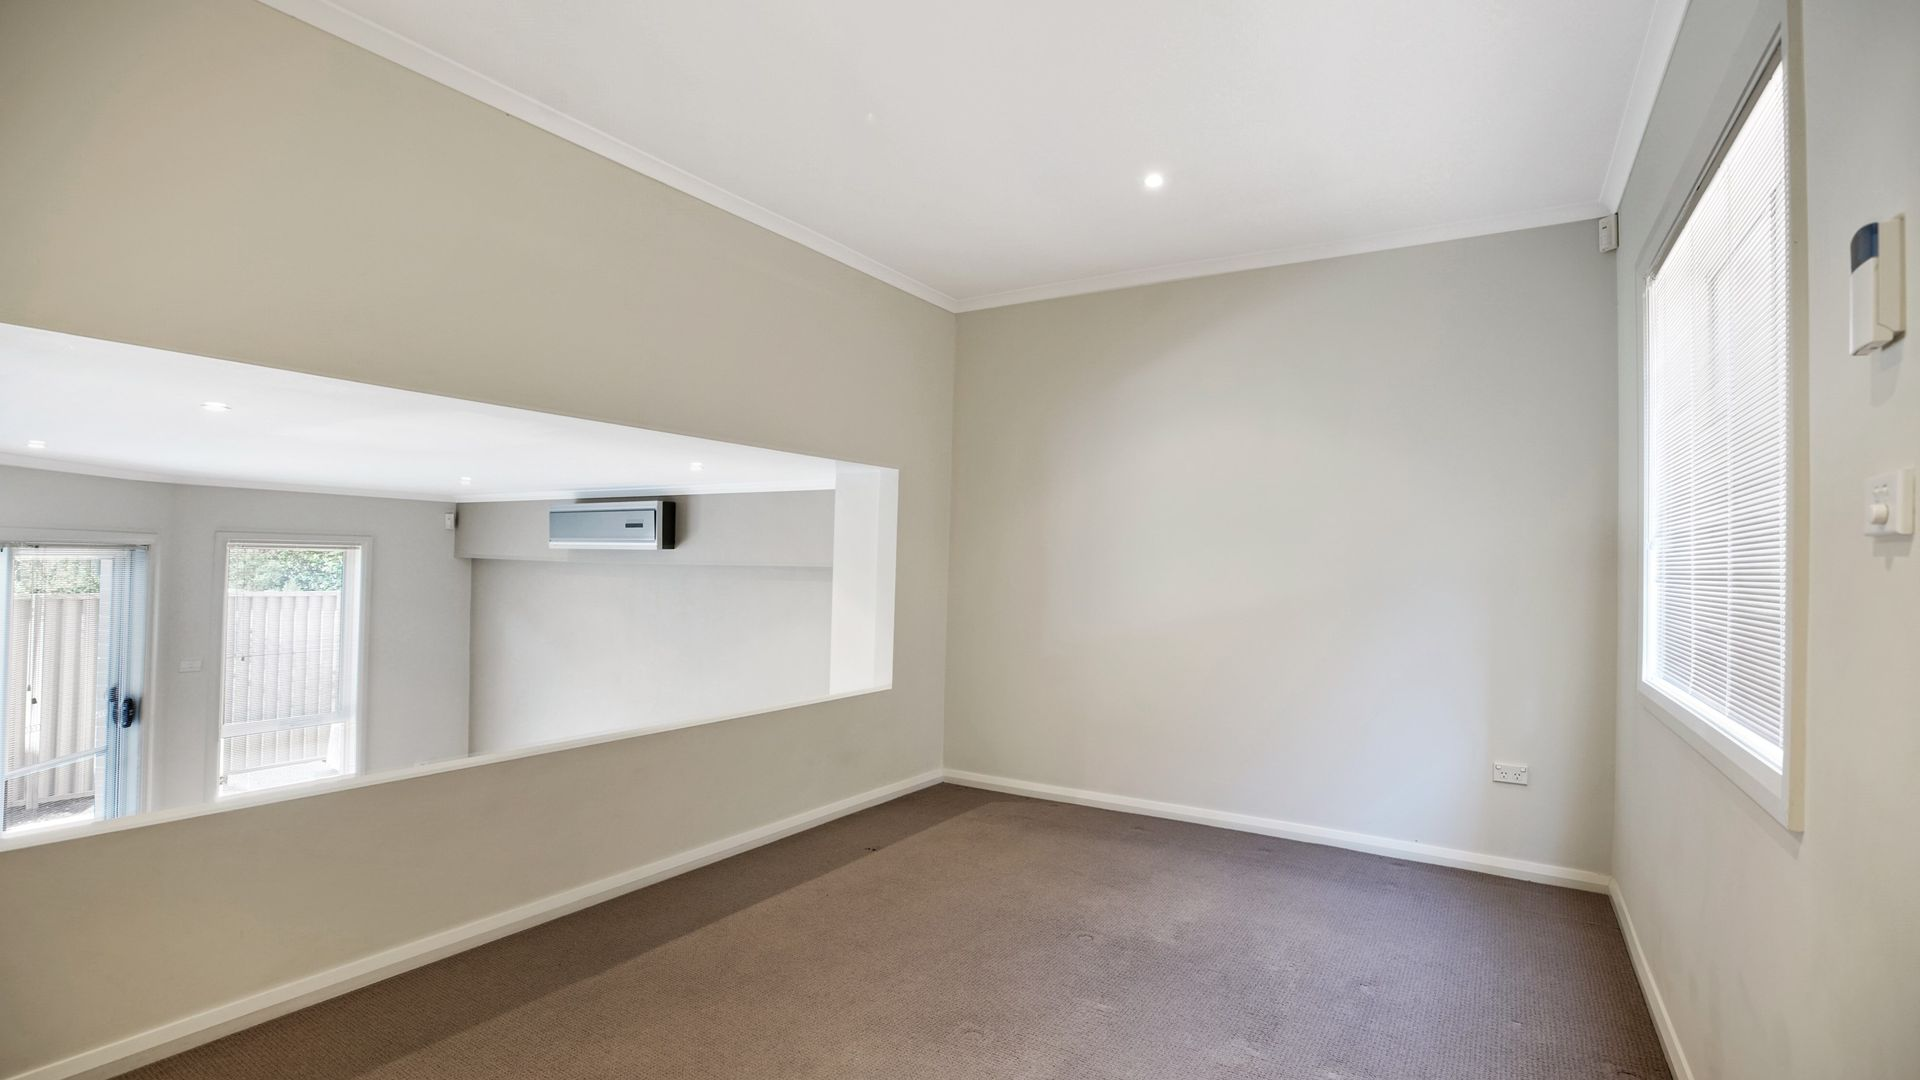 23/21-25 Orth Street, Kingswood NSW 2747, Image 2